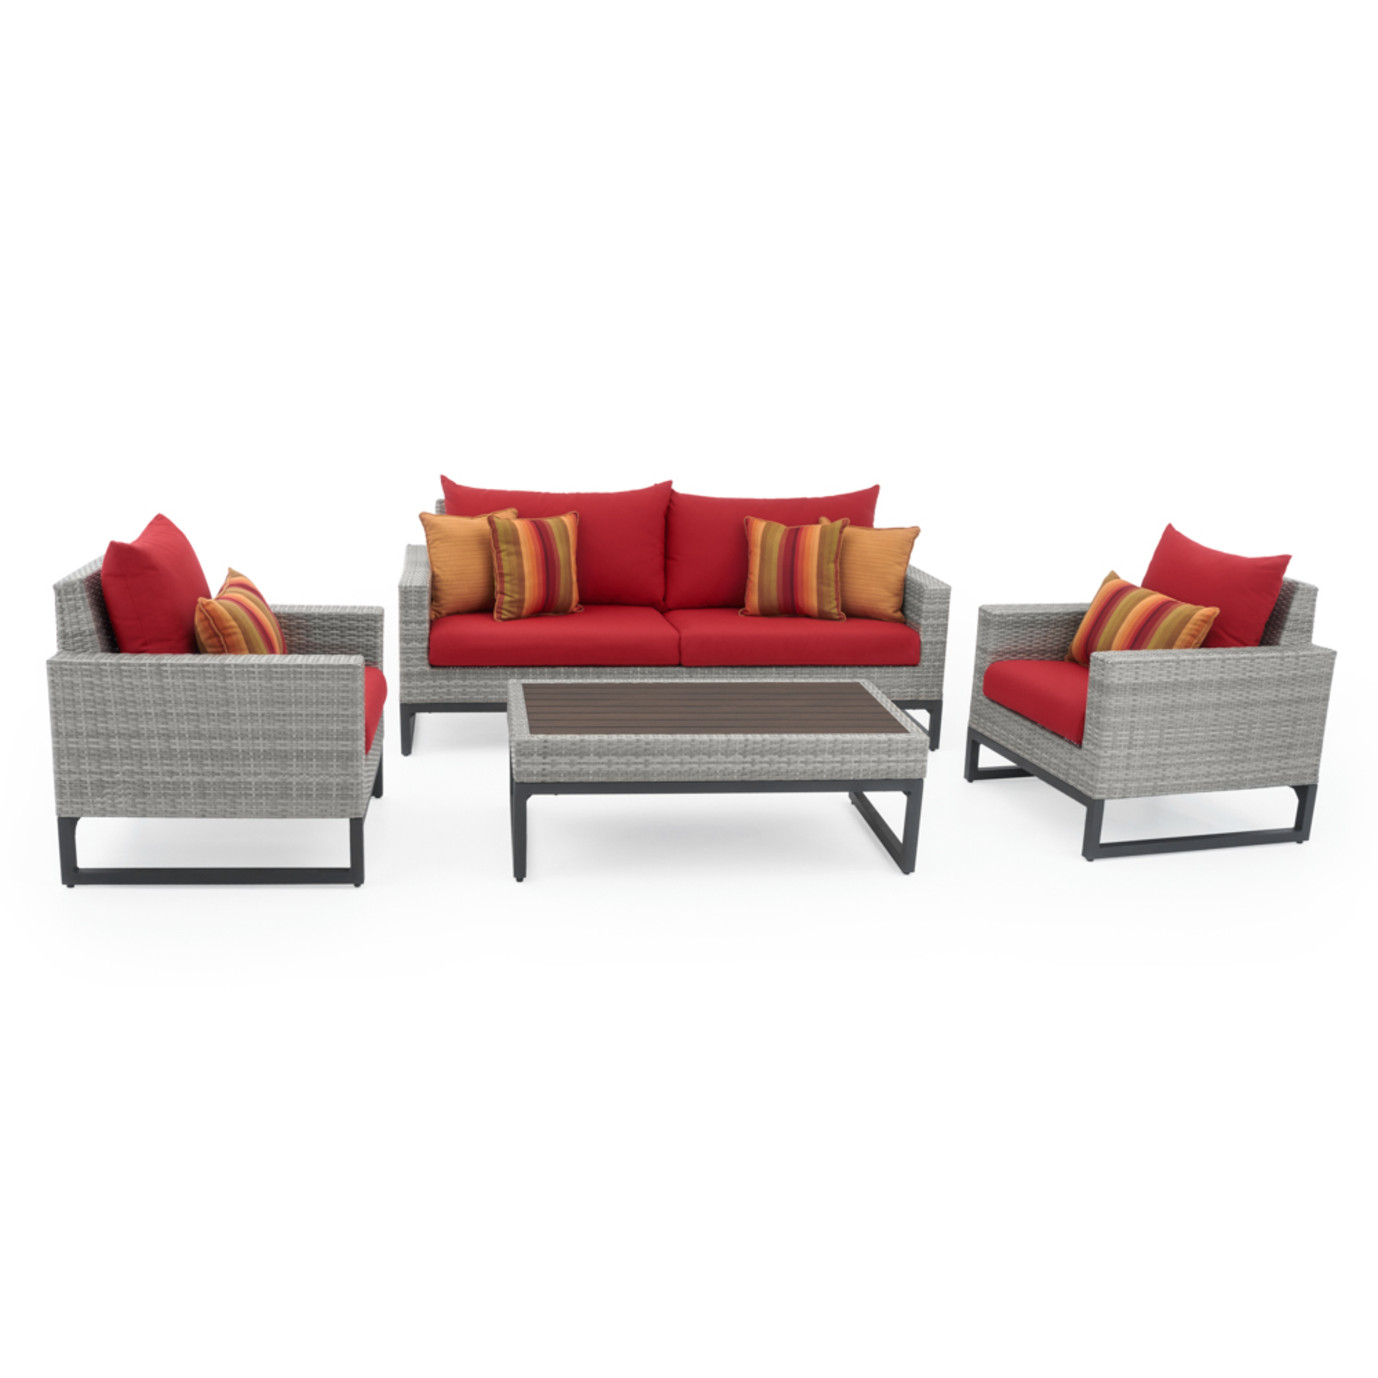 Milo™Gray 4 Piece Seating Set - Sunset Red